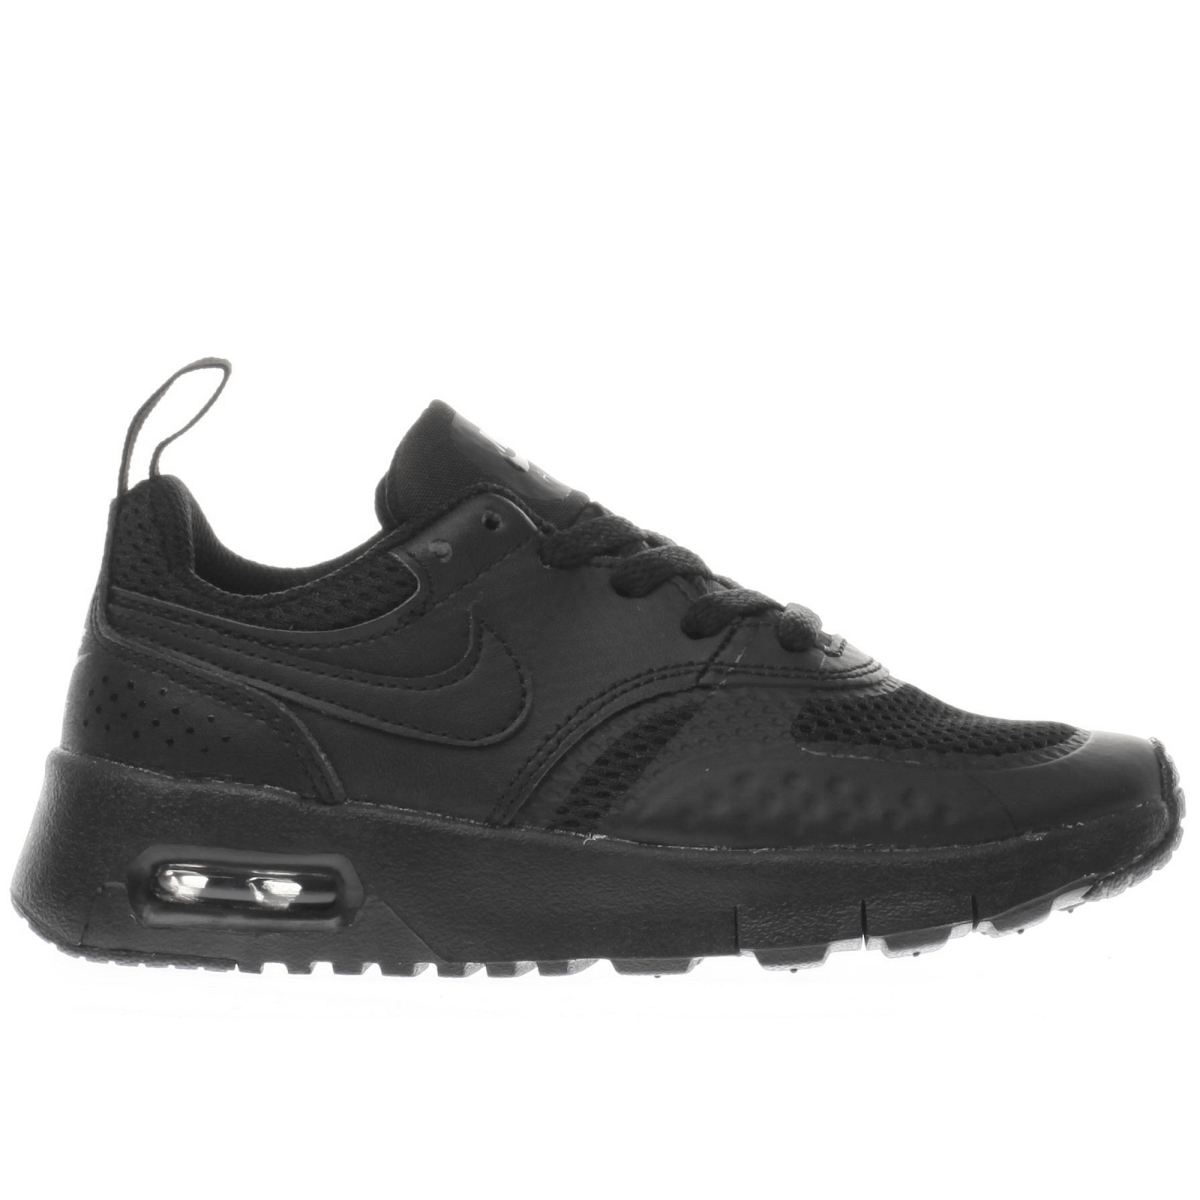 nike black air max vision Junior Trainers